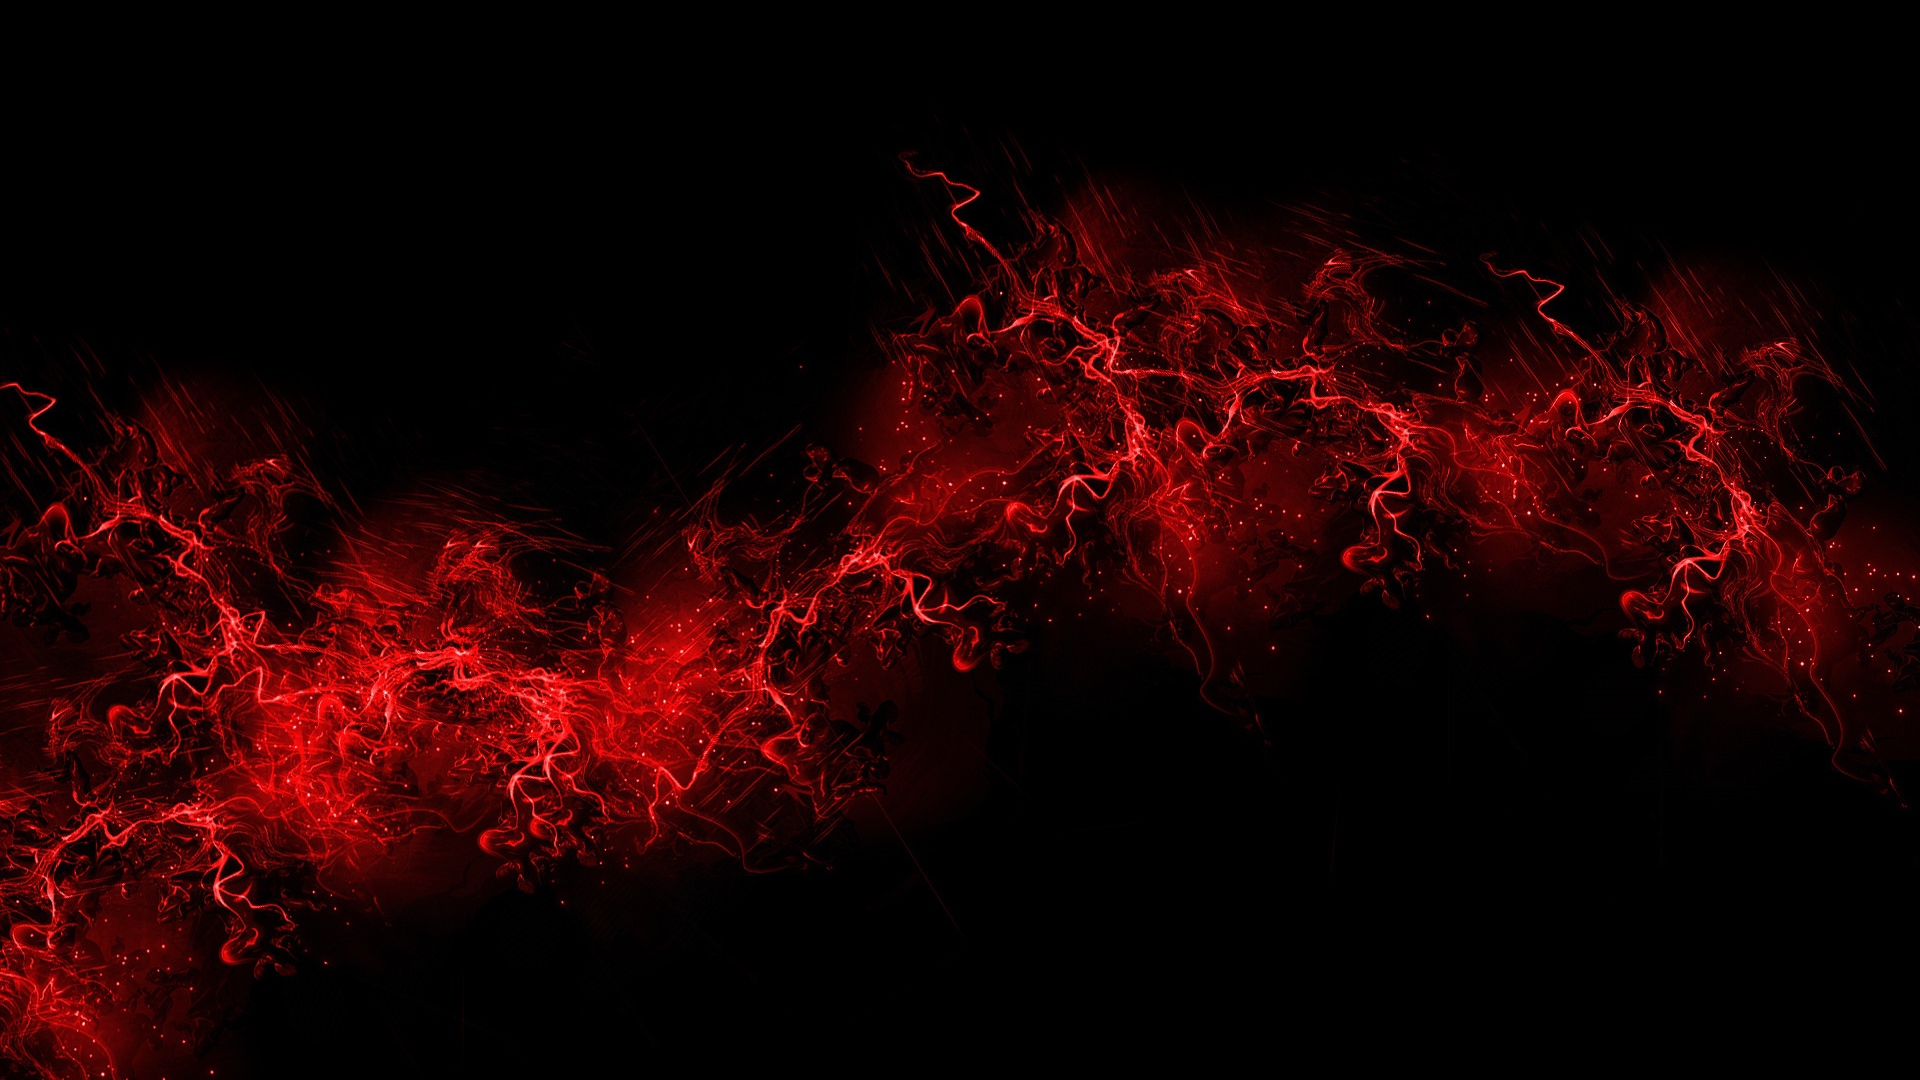 49 black and red 1080p wallpaper on wallpapersafari